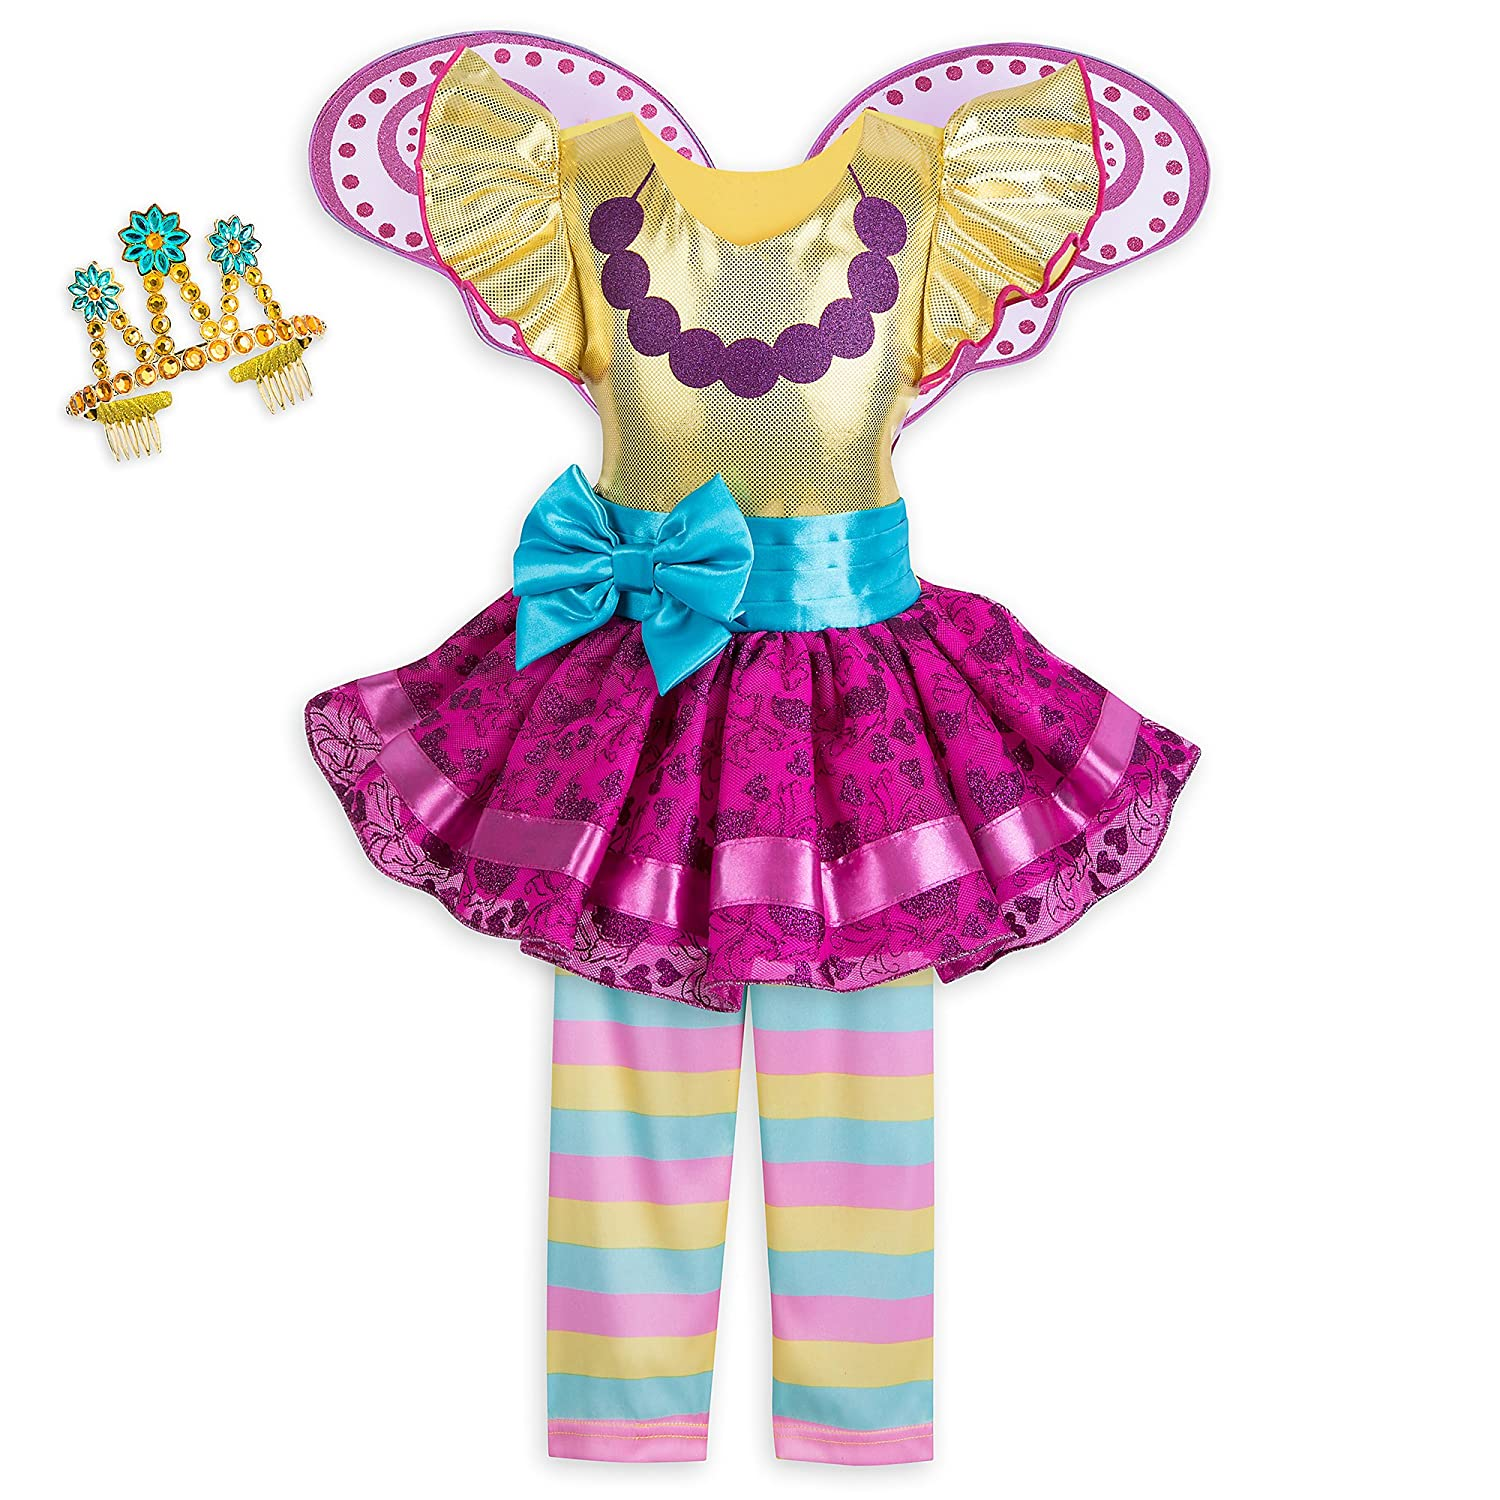 Disney Fancy Nancy Costume Set for Kids Multi